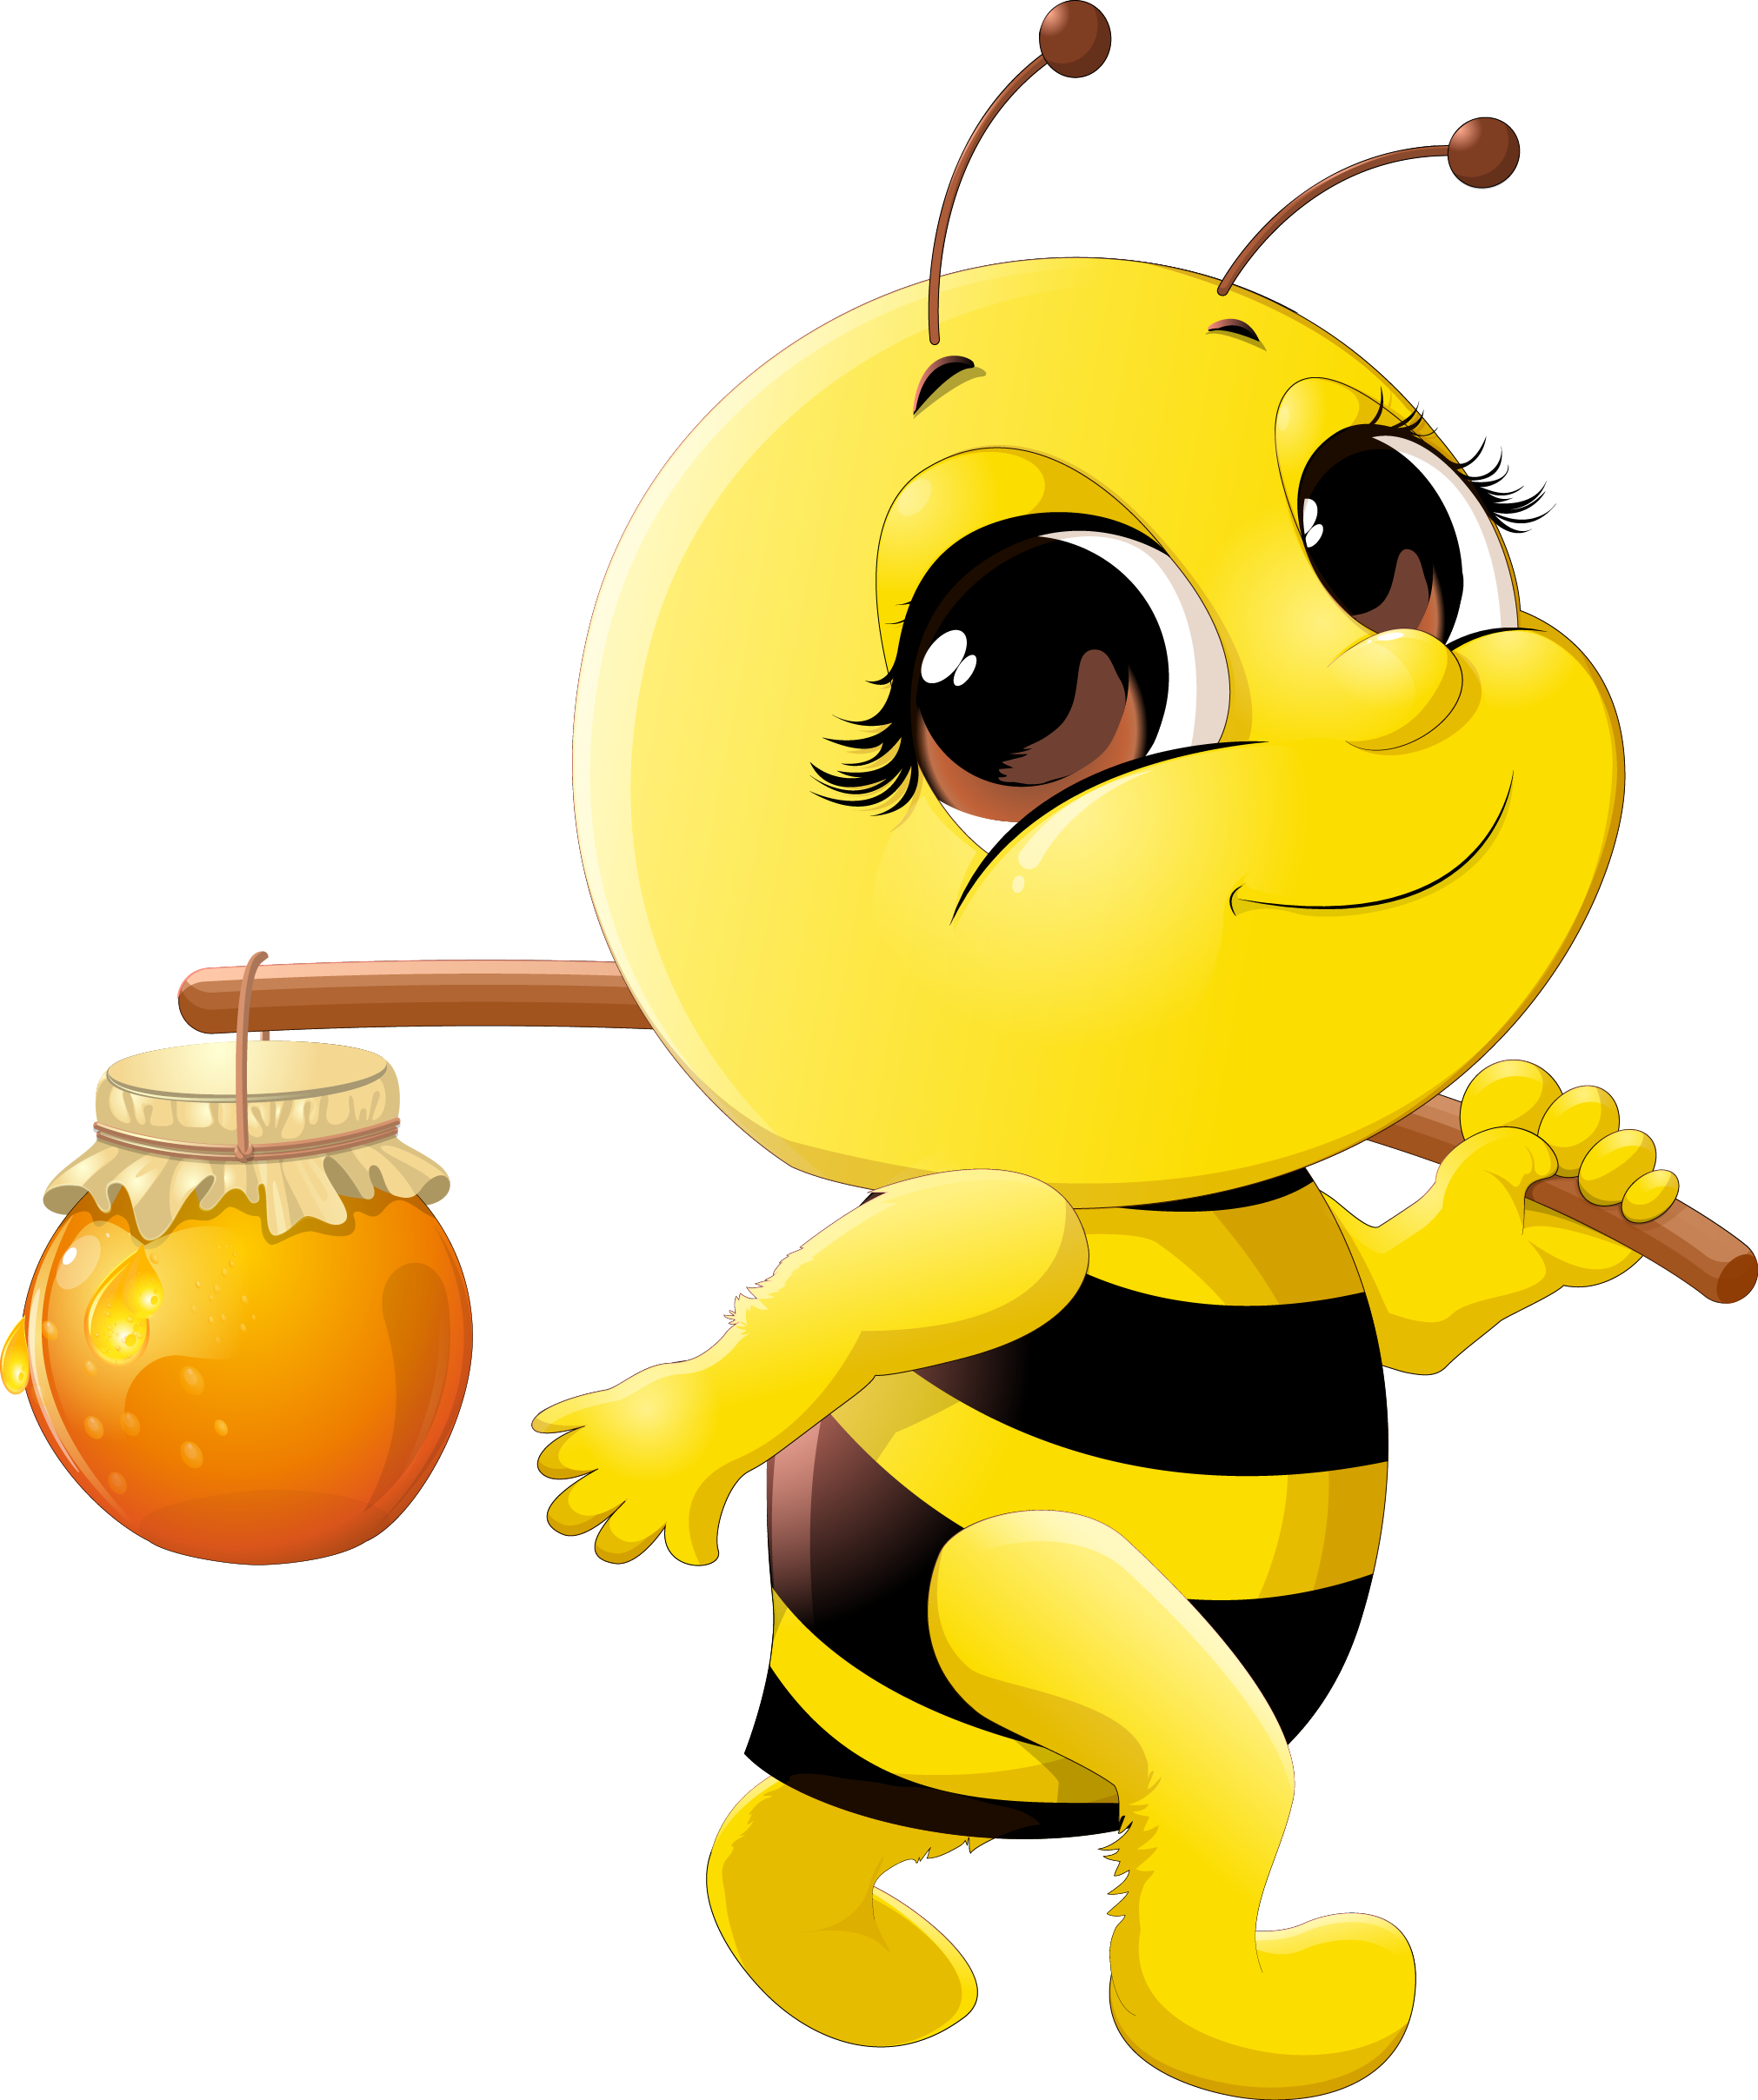 Animated butter png. Honey bee cartoon clip